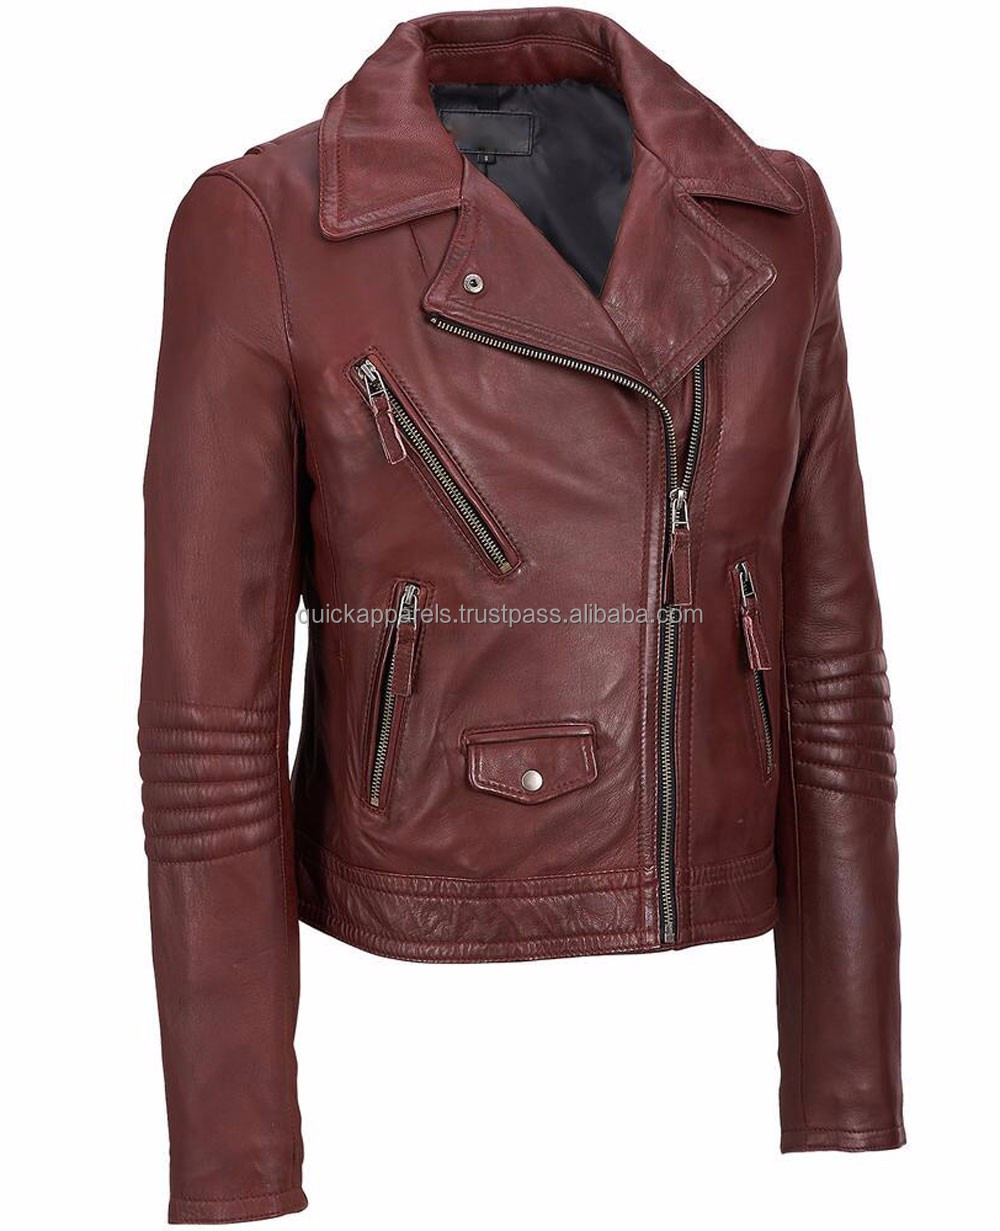 Custom Trendy Style Leather Jacket Women,Winter women's clothing garment apparel OEM/ODM manufacturer direct factory custom